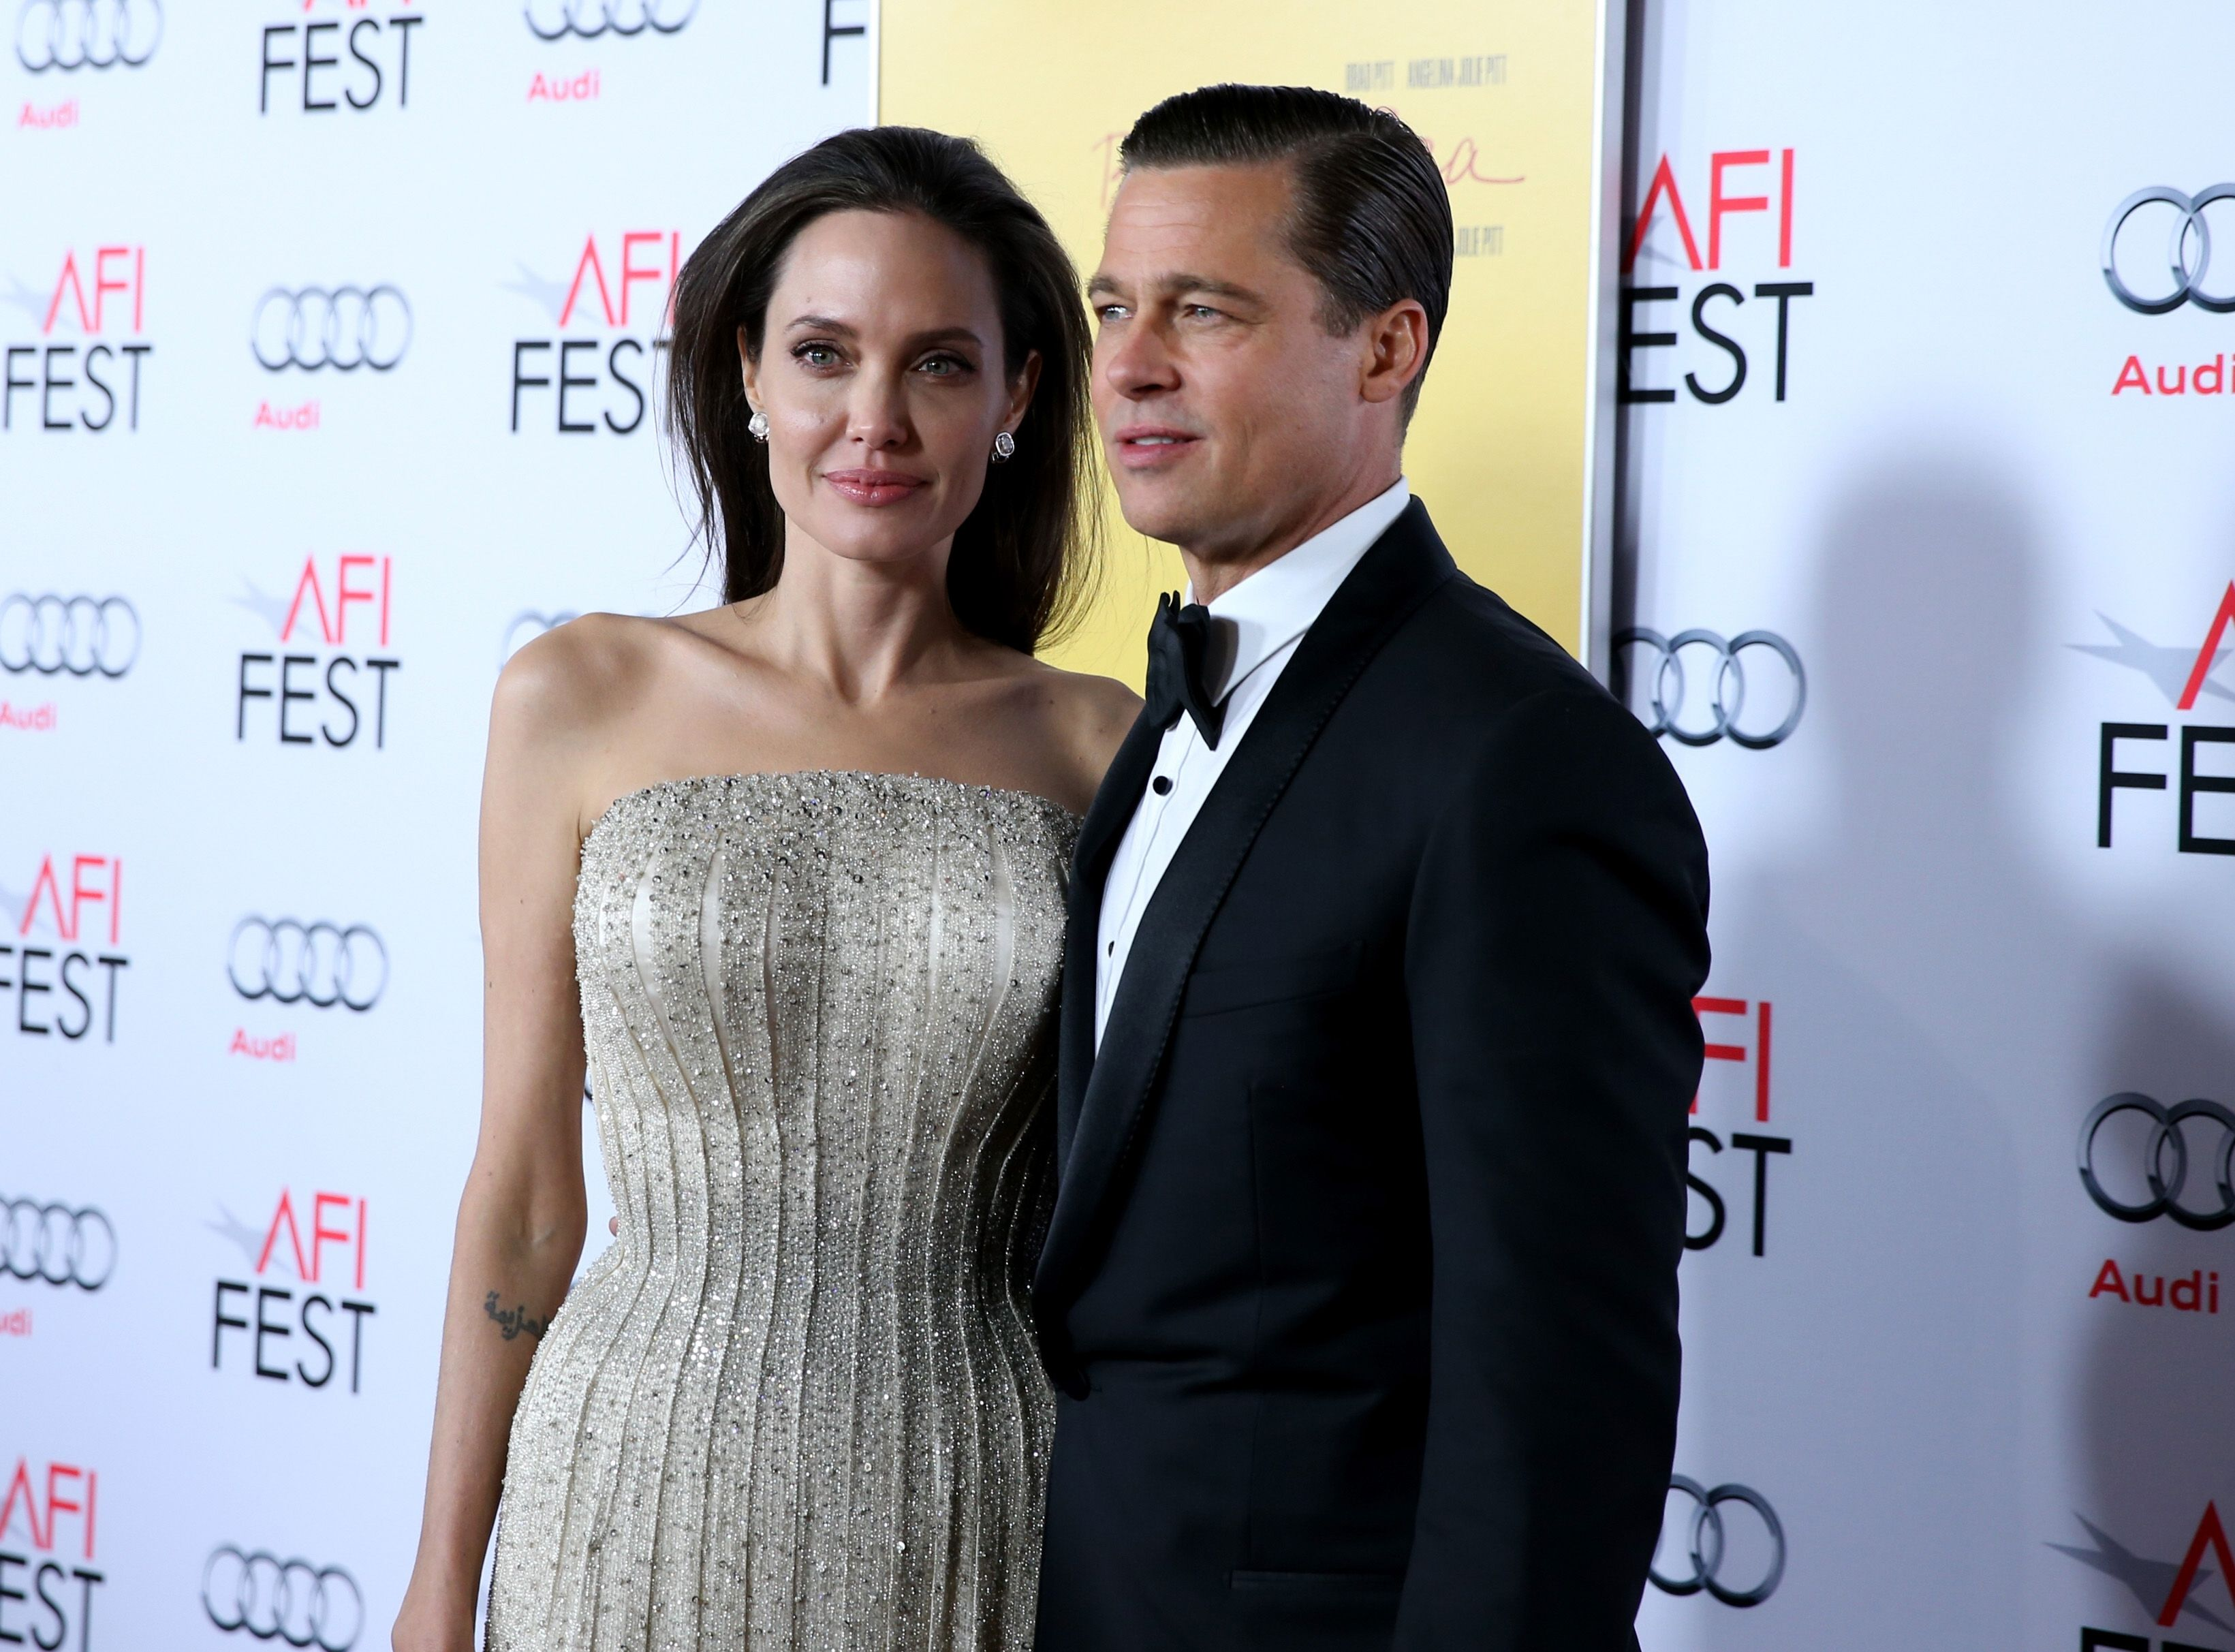 Brad and Angelina revealed they fell in love with each other while filming Mr. and Mrs. Smith / Getty Images